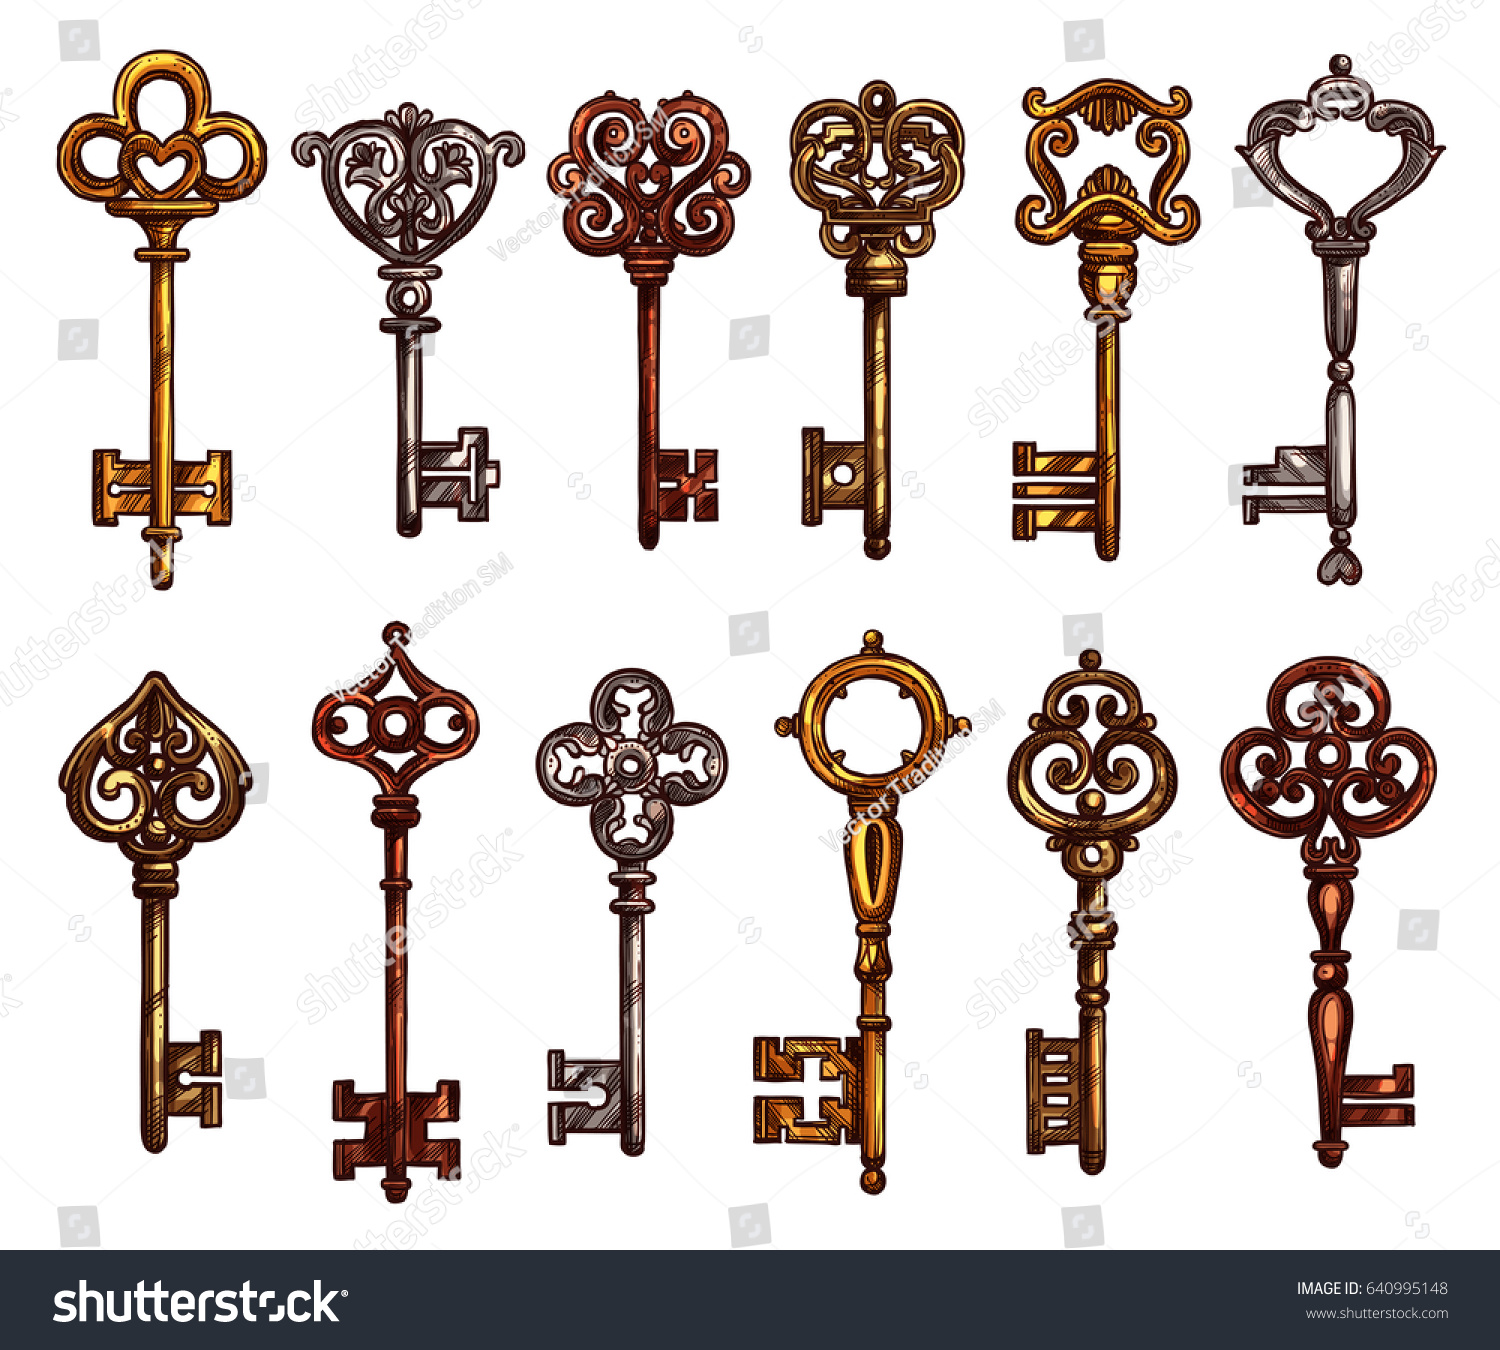 Key vintage skeleton key isolated sketch stock vector for Door key design